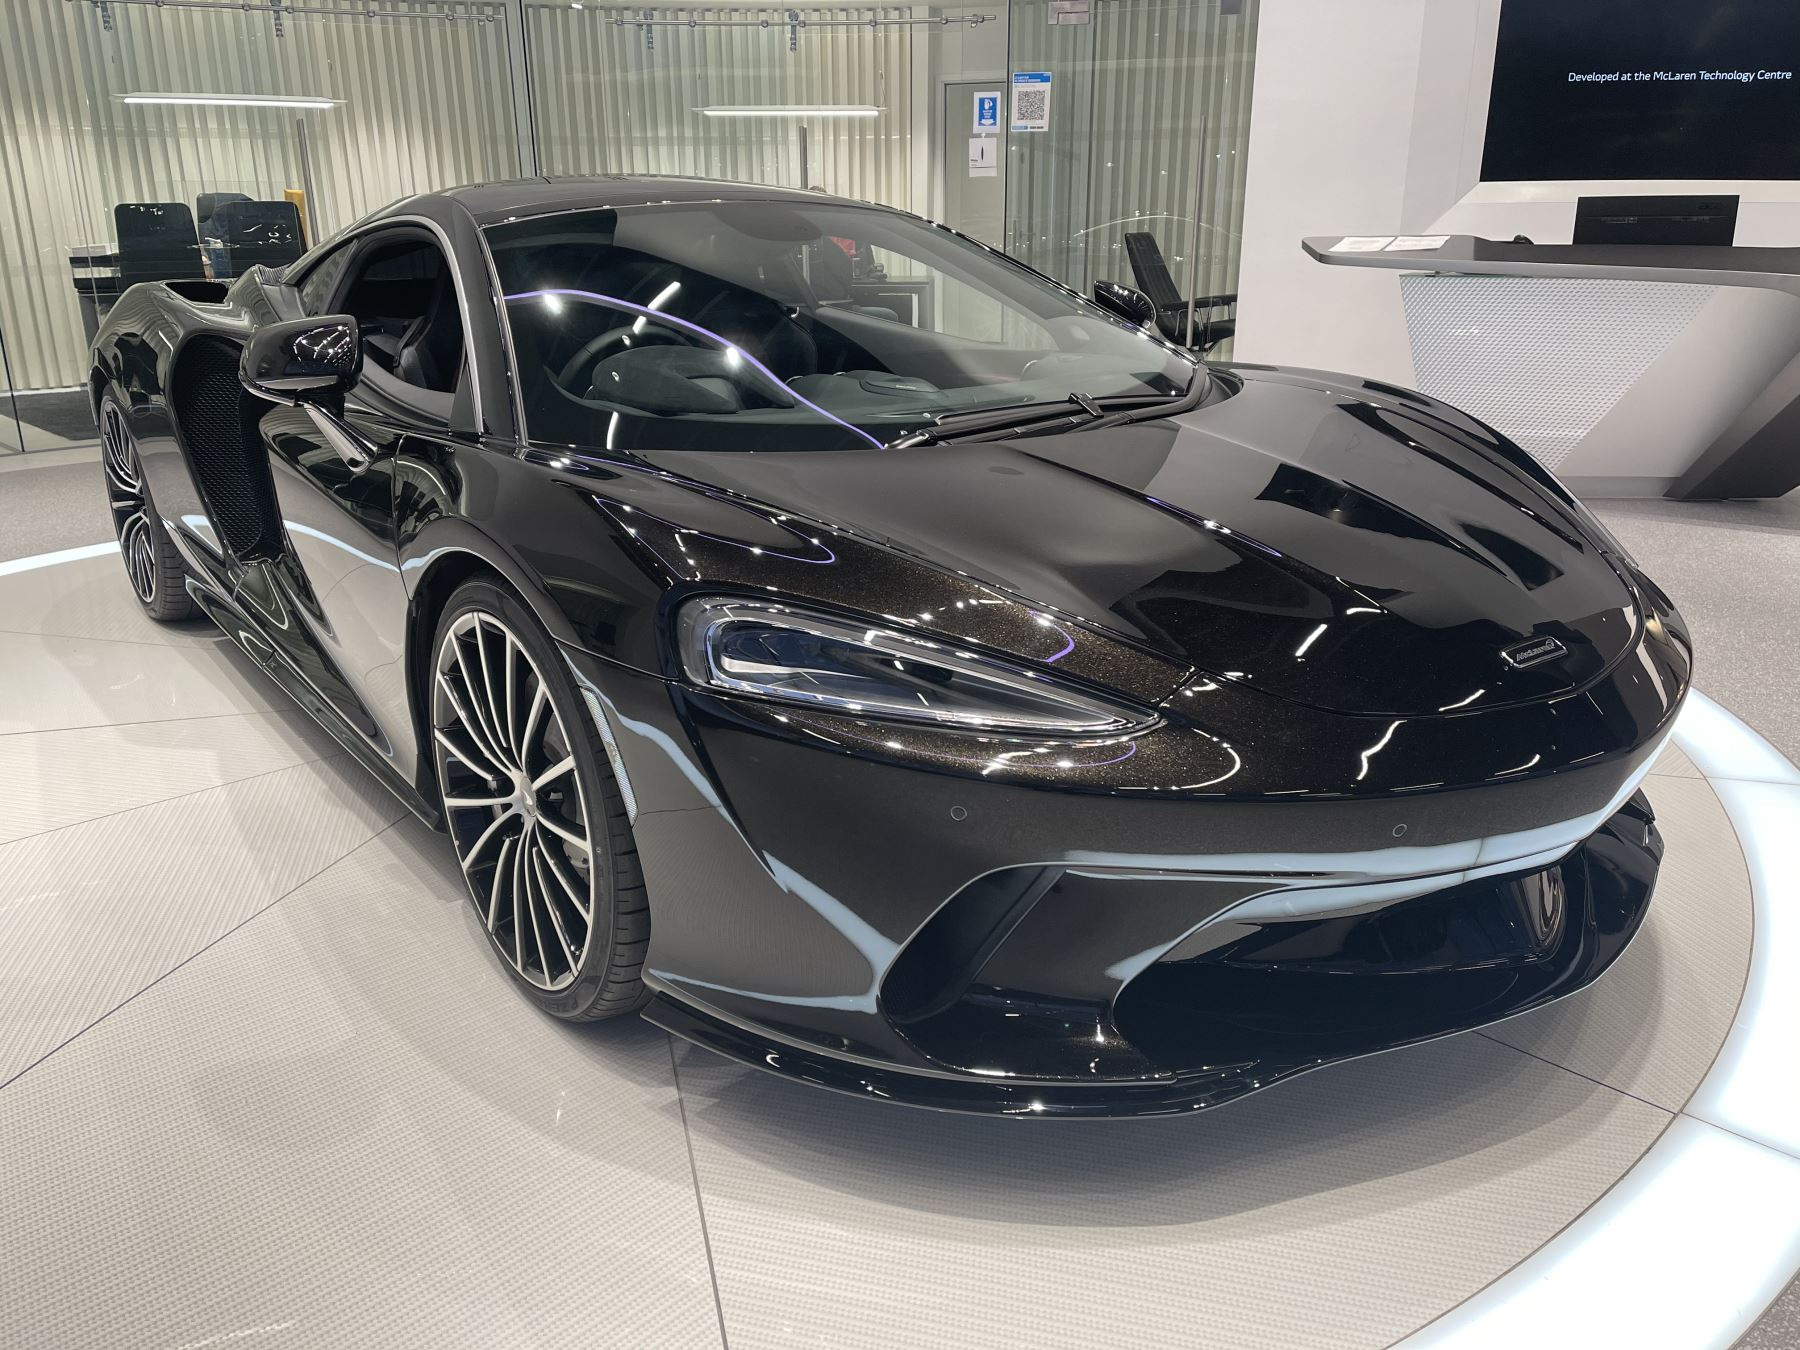 McLaren GT 4.0 V8 2dr Automatic 3 door Coupe (2021)